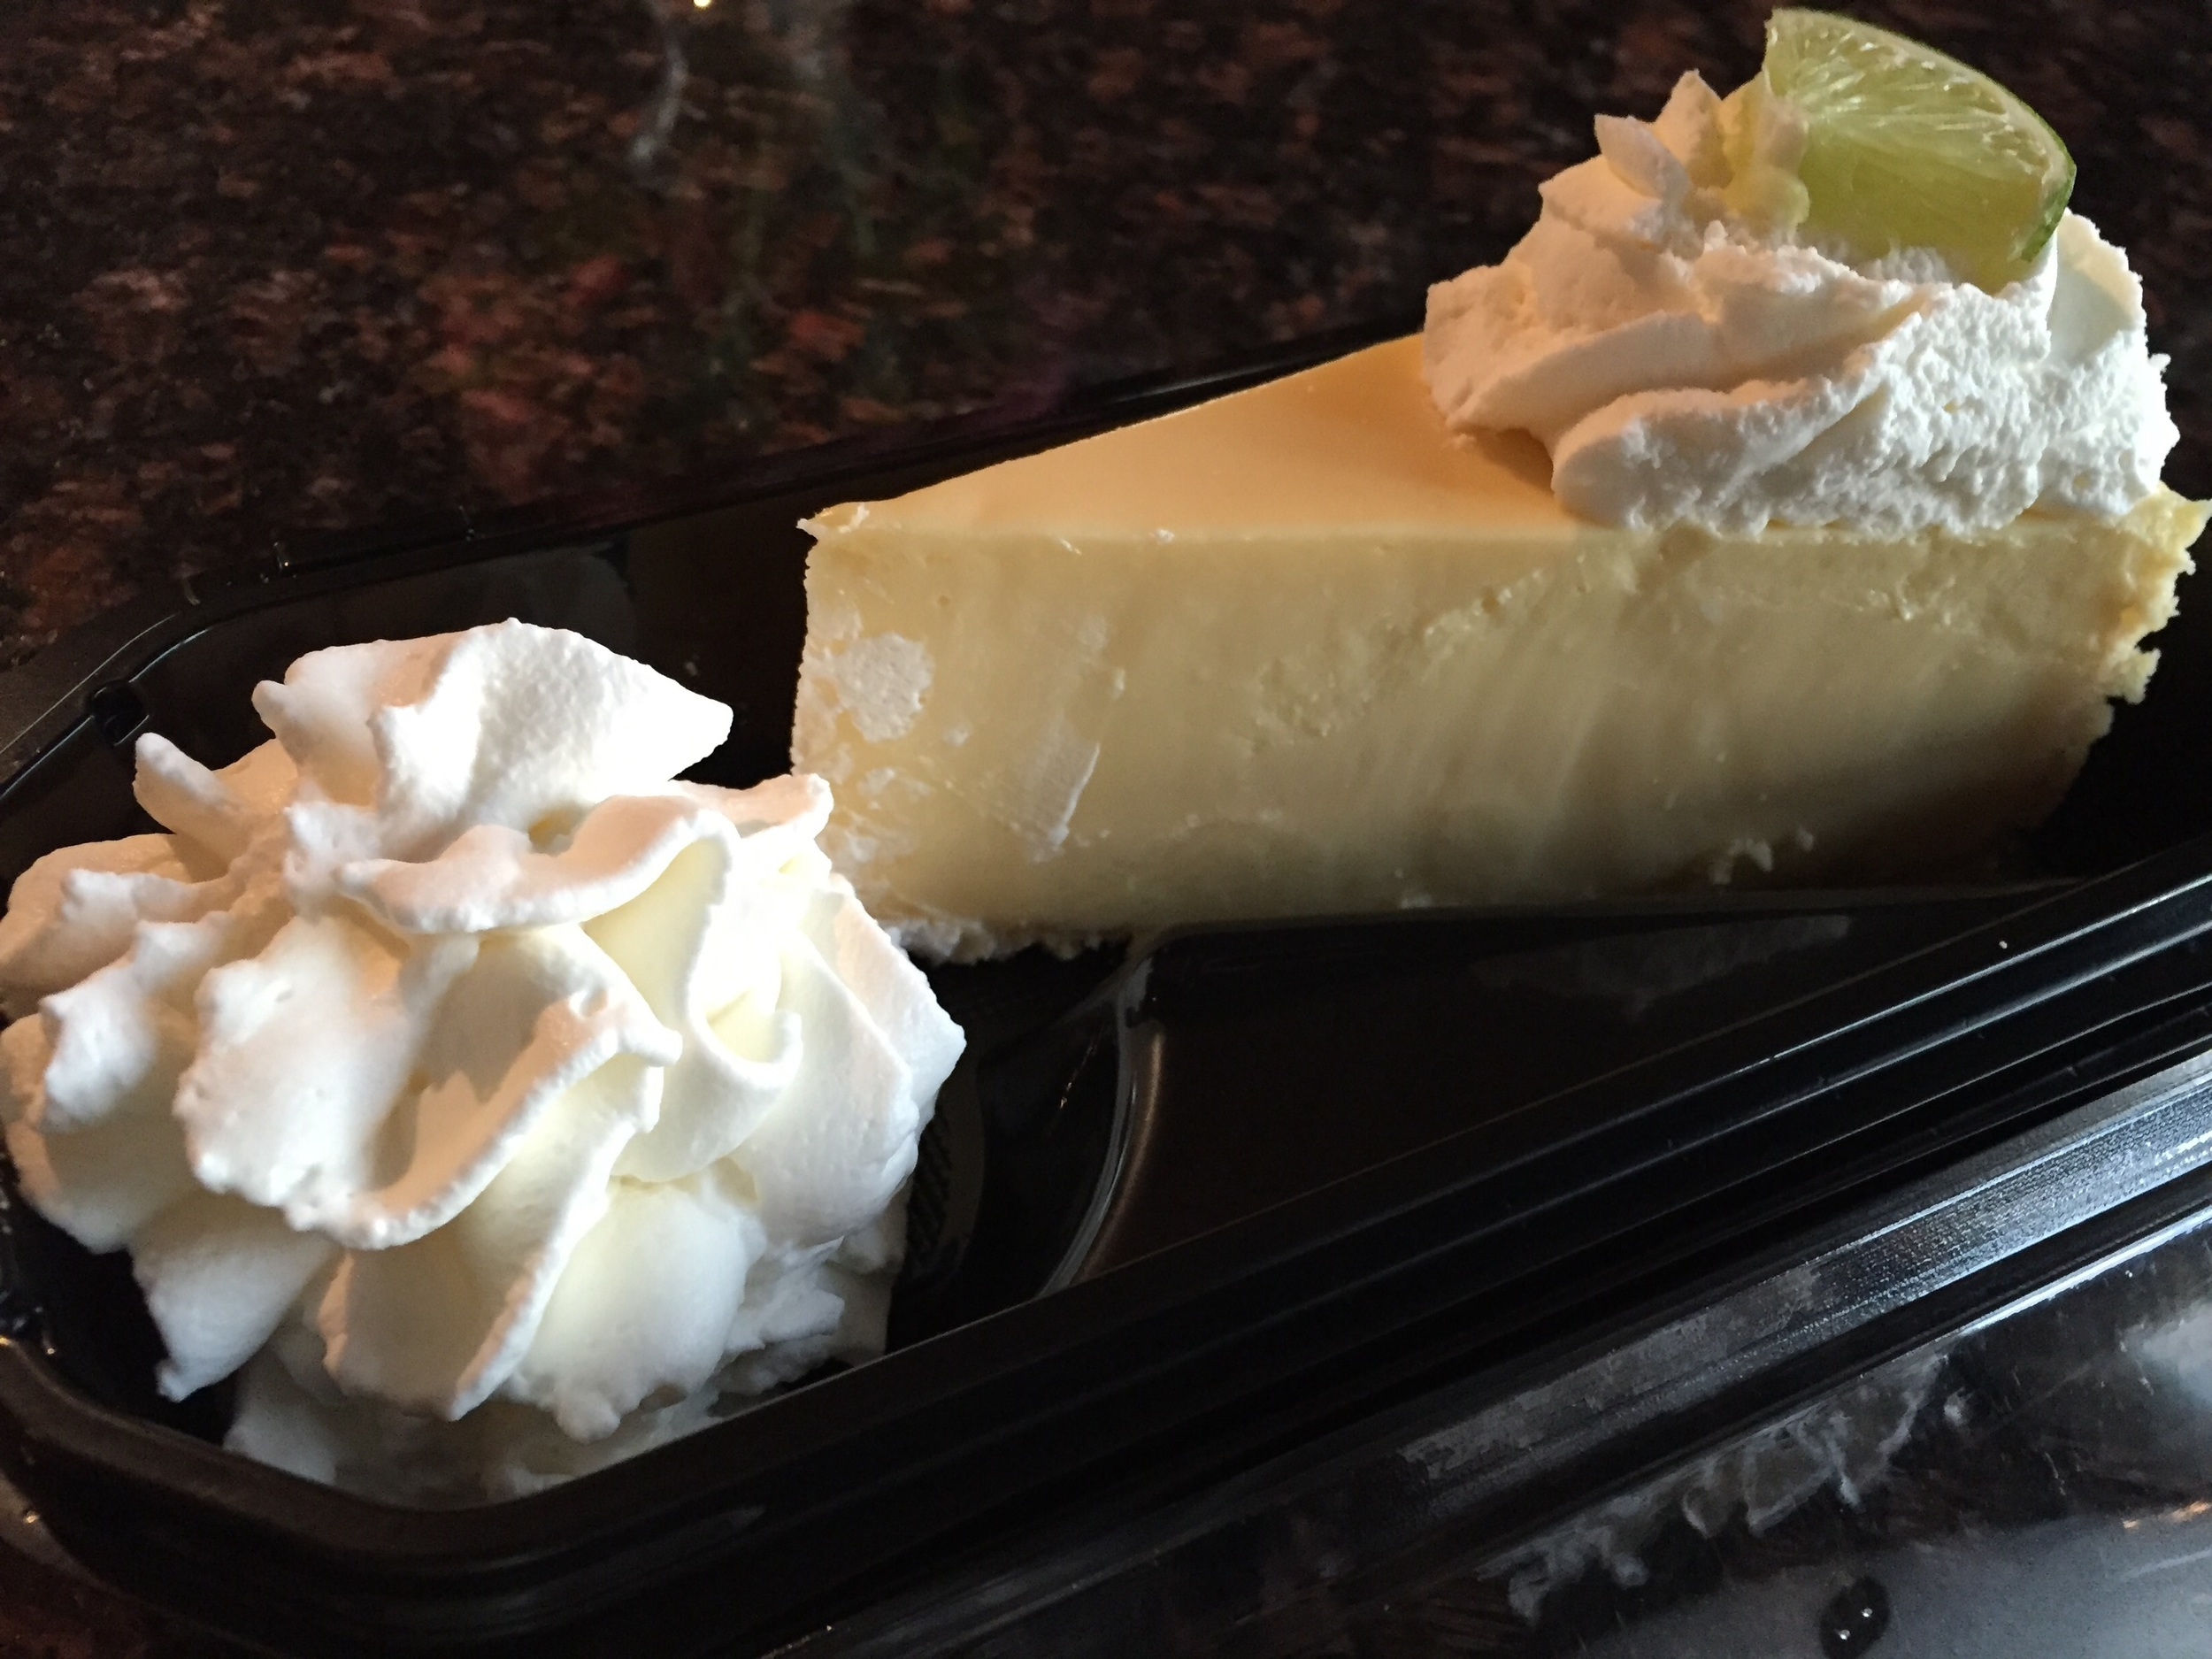 Tastes exactly like a great Key Lime pie only the texture of cheesecake! YUMM!!!